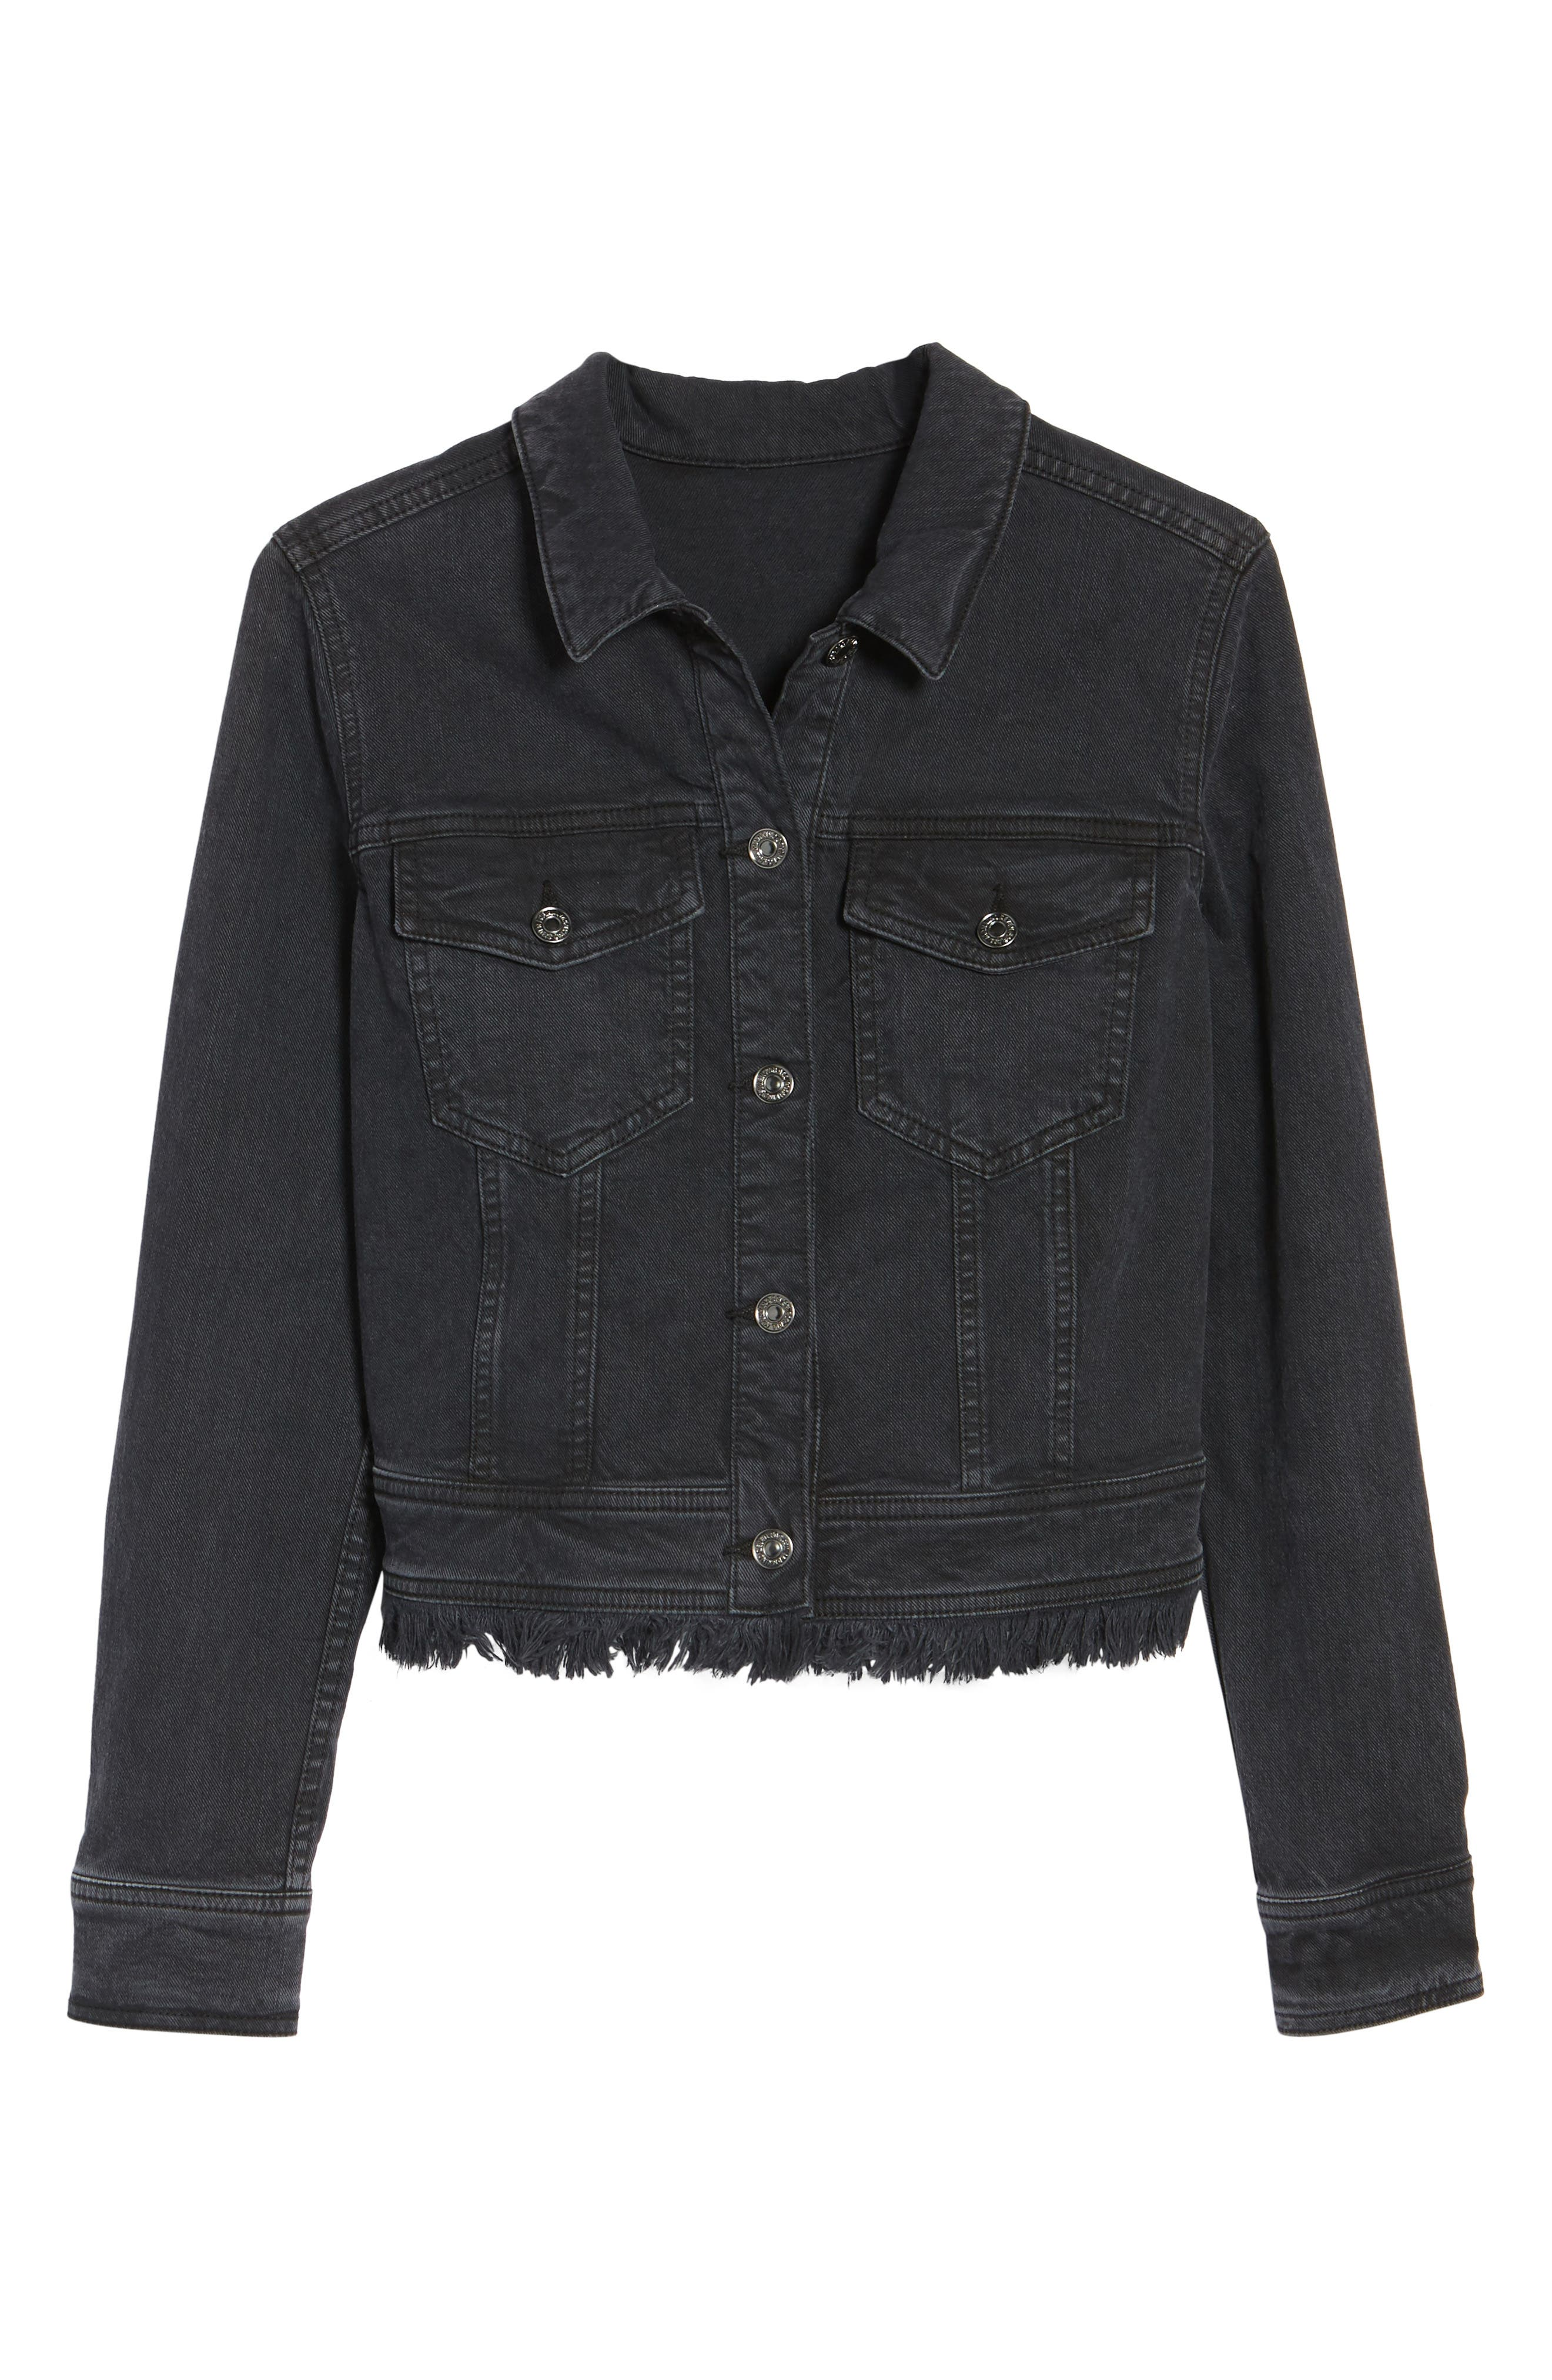 Embellished Boyfriend Denim Jacket,                             Alternate thumbnail 5, color,                             005